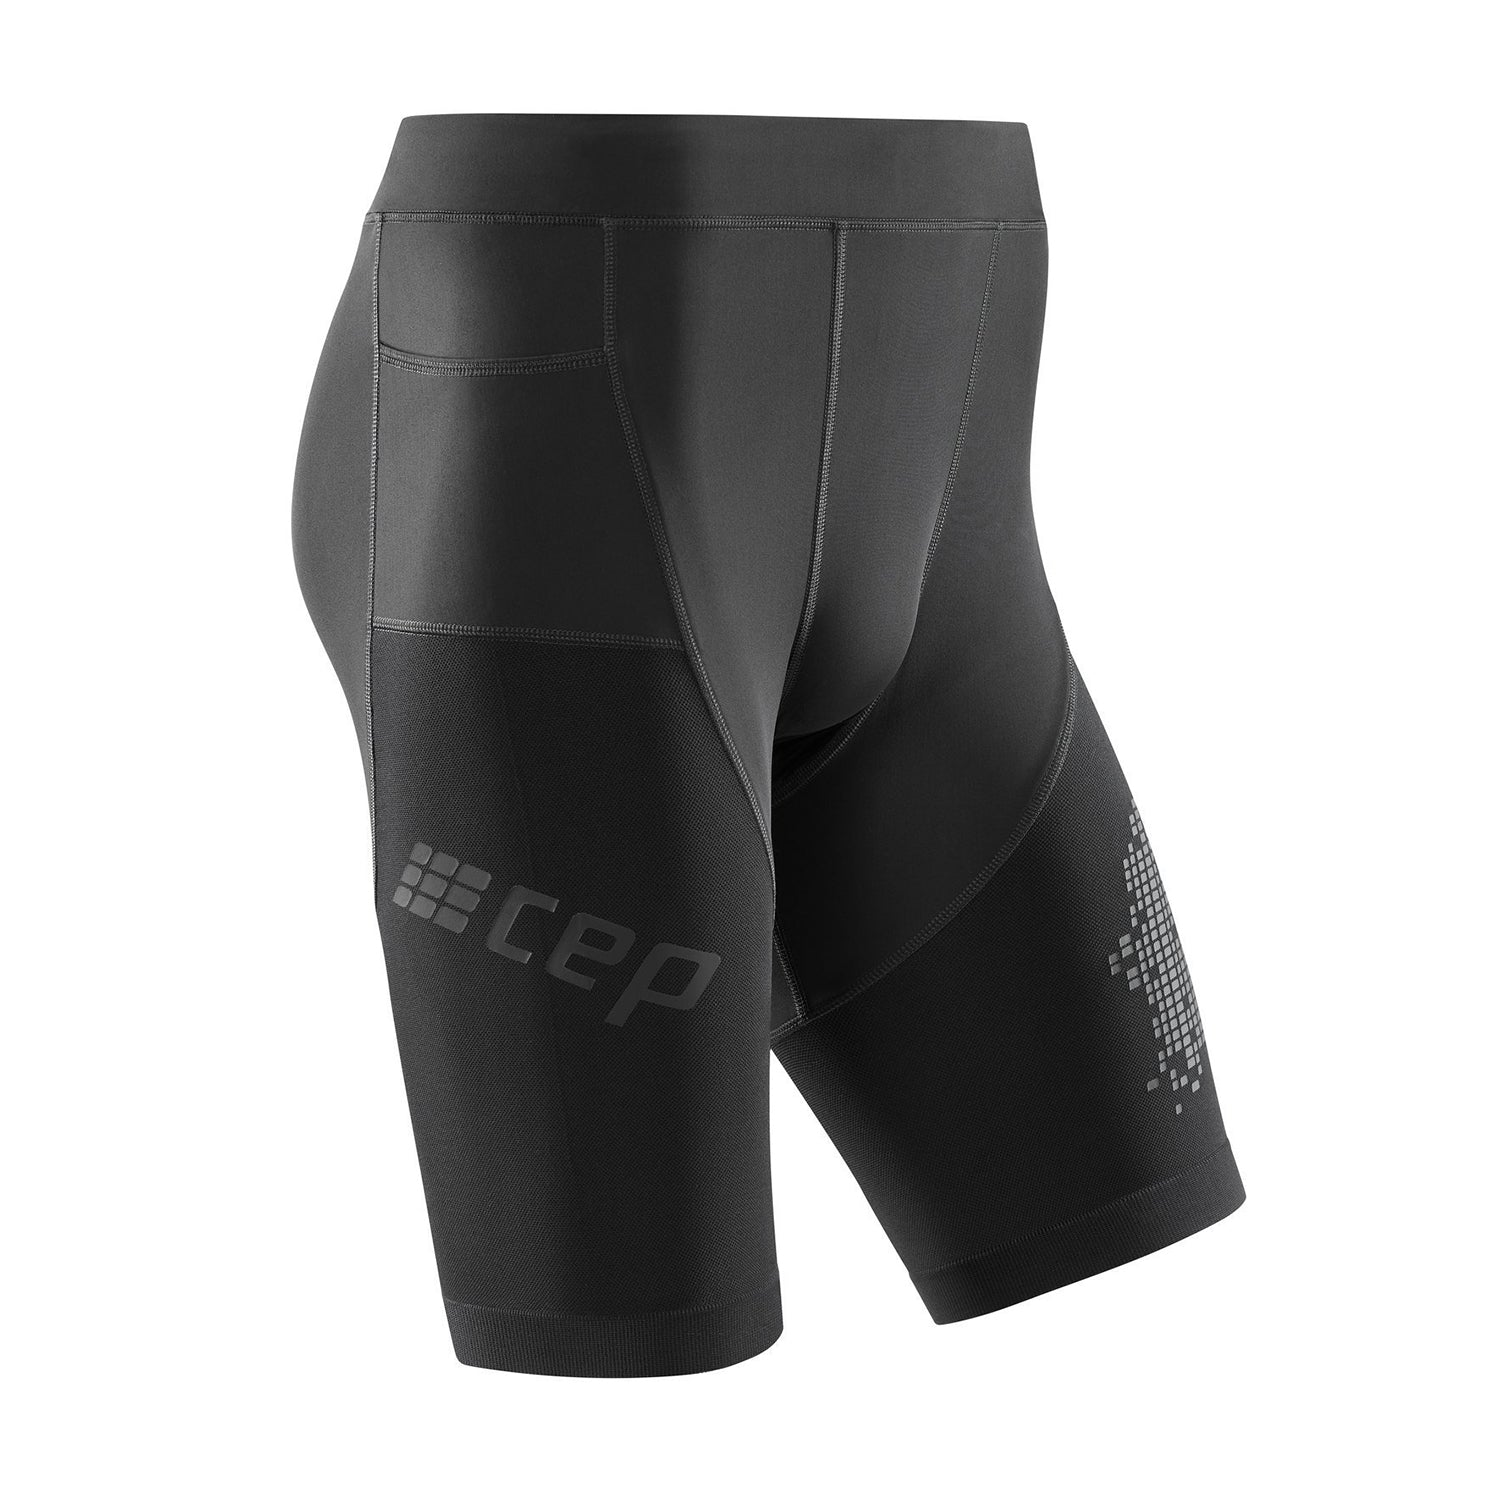 e3a706275c2ef Men's Compression Run Shorts 3.0 - Black – Gazelle Sports